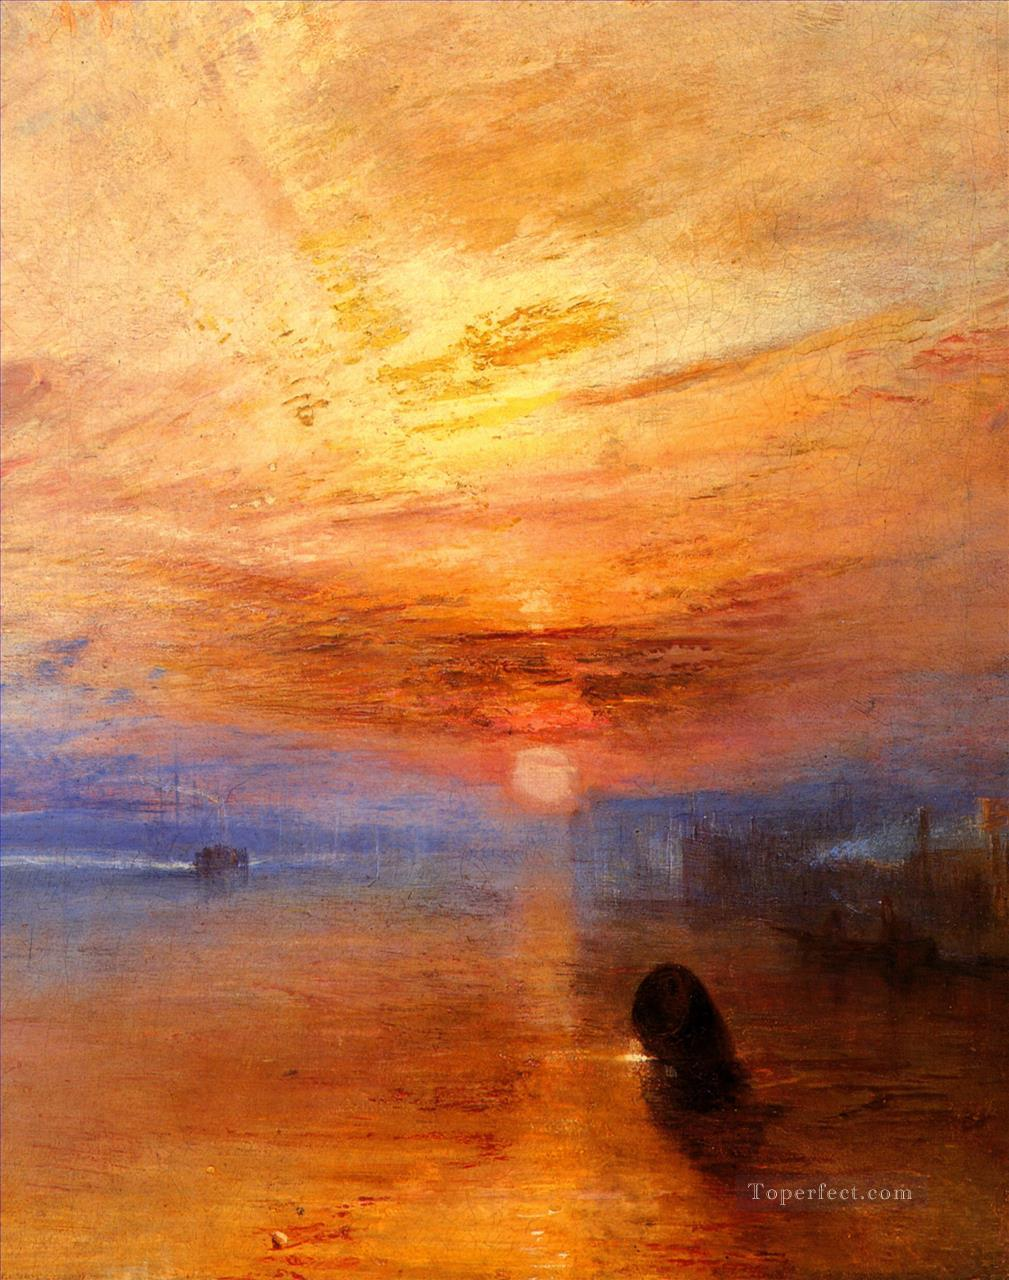 The fightingTemerairetugged to her last Berth to be broken up landscape Turner Oil Paintings